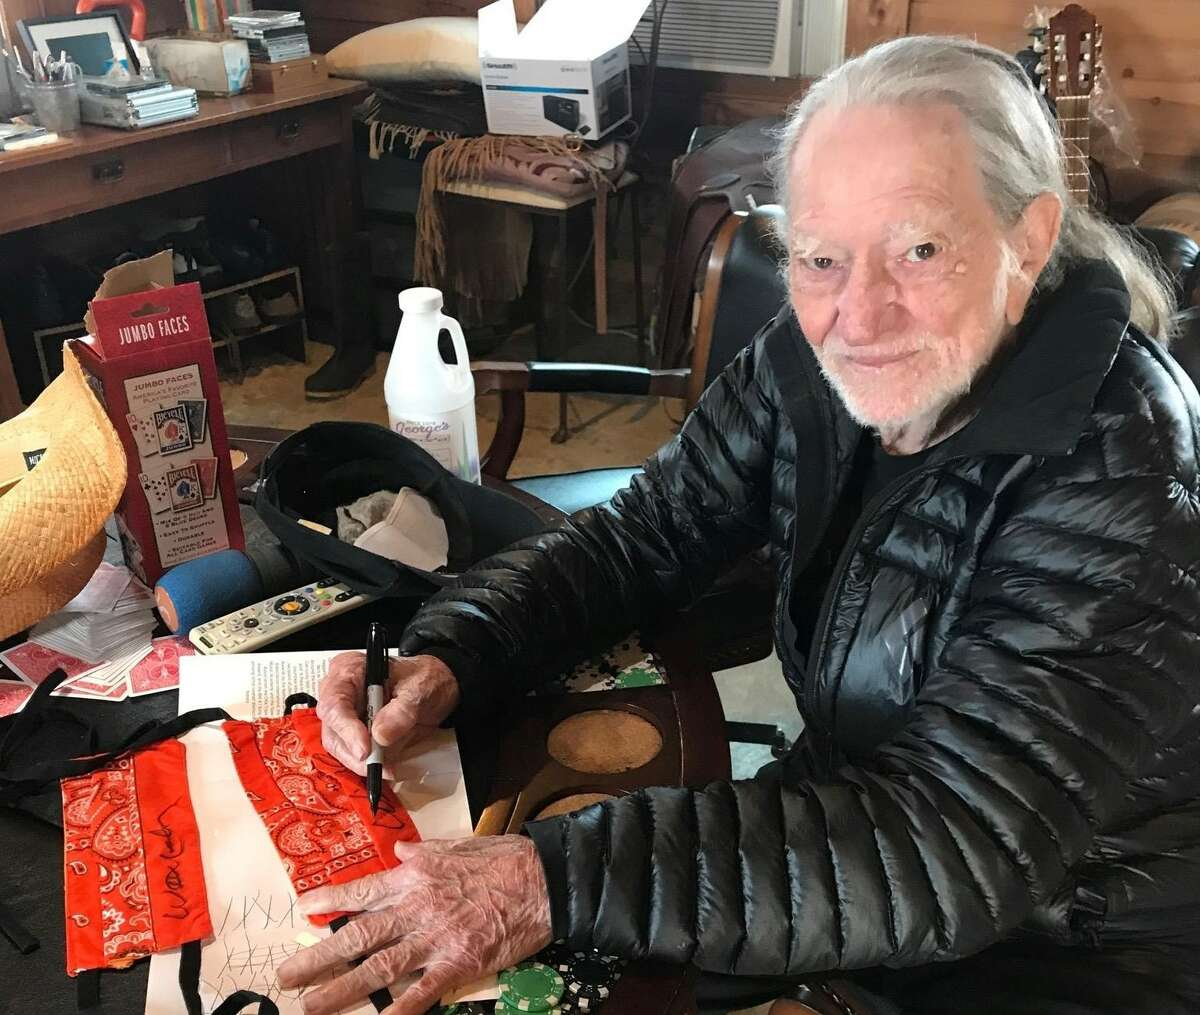 Texan music legend Willie Nelson stepped up to lend a helping hand to a Houston-based volunteer group making face masks to help protect healthcare workers from the coronavirus.